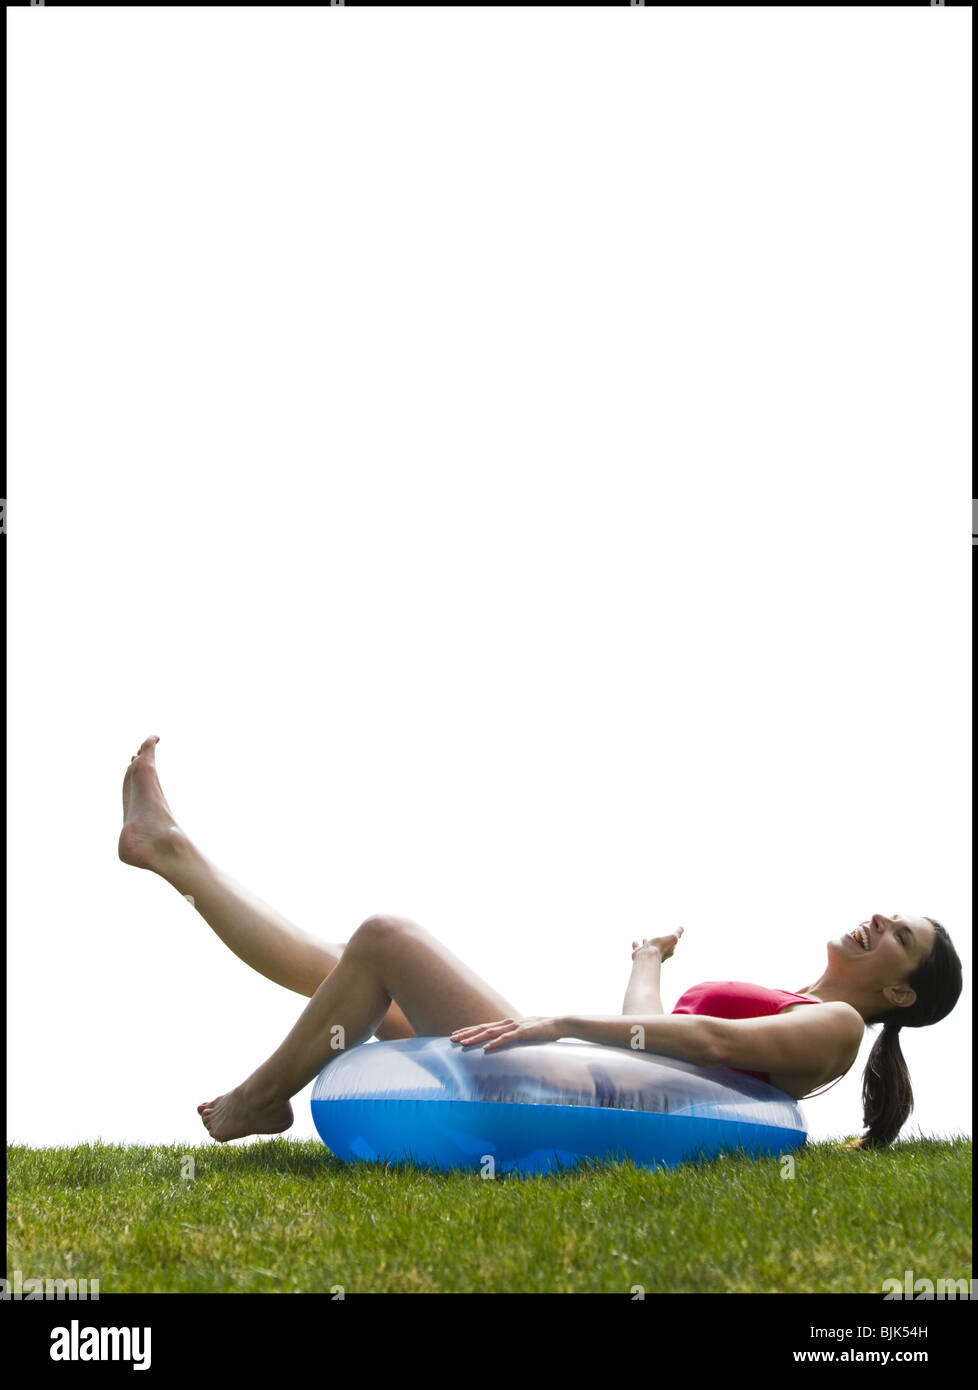 Woman in bikini lying in swimming ring laughing Stock Photo